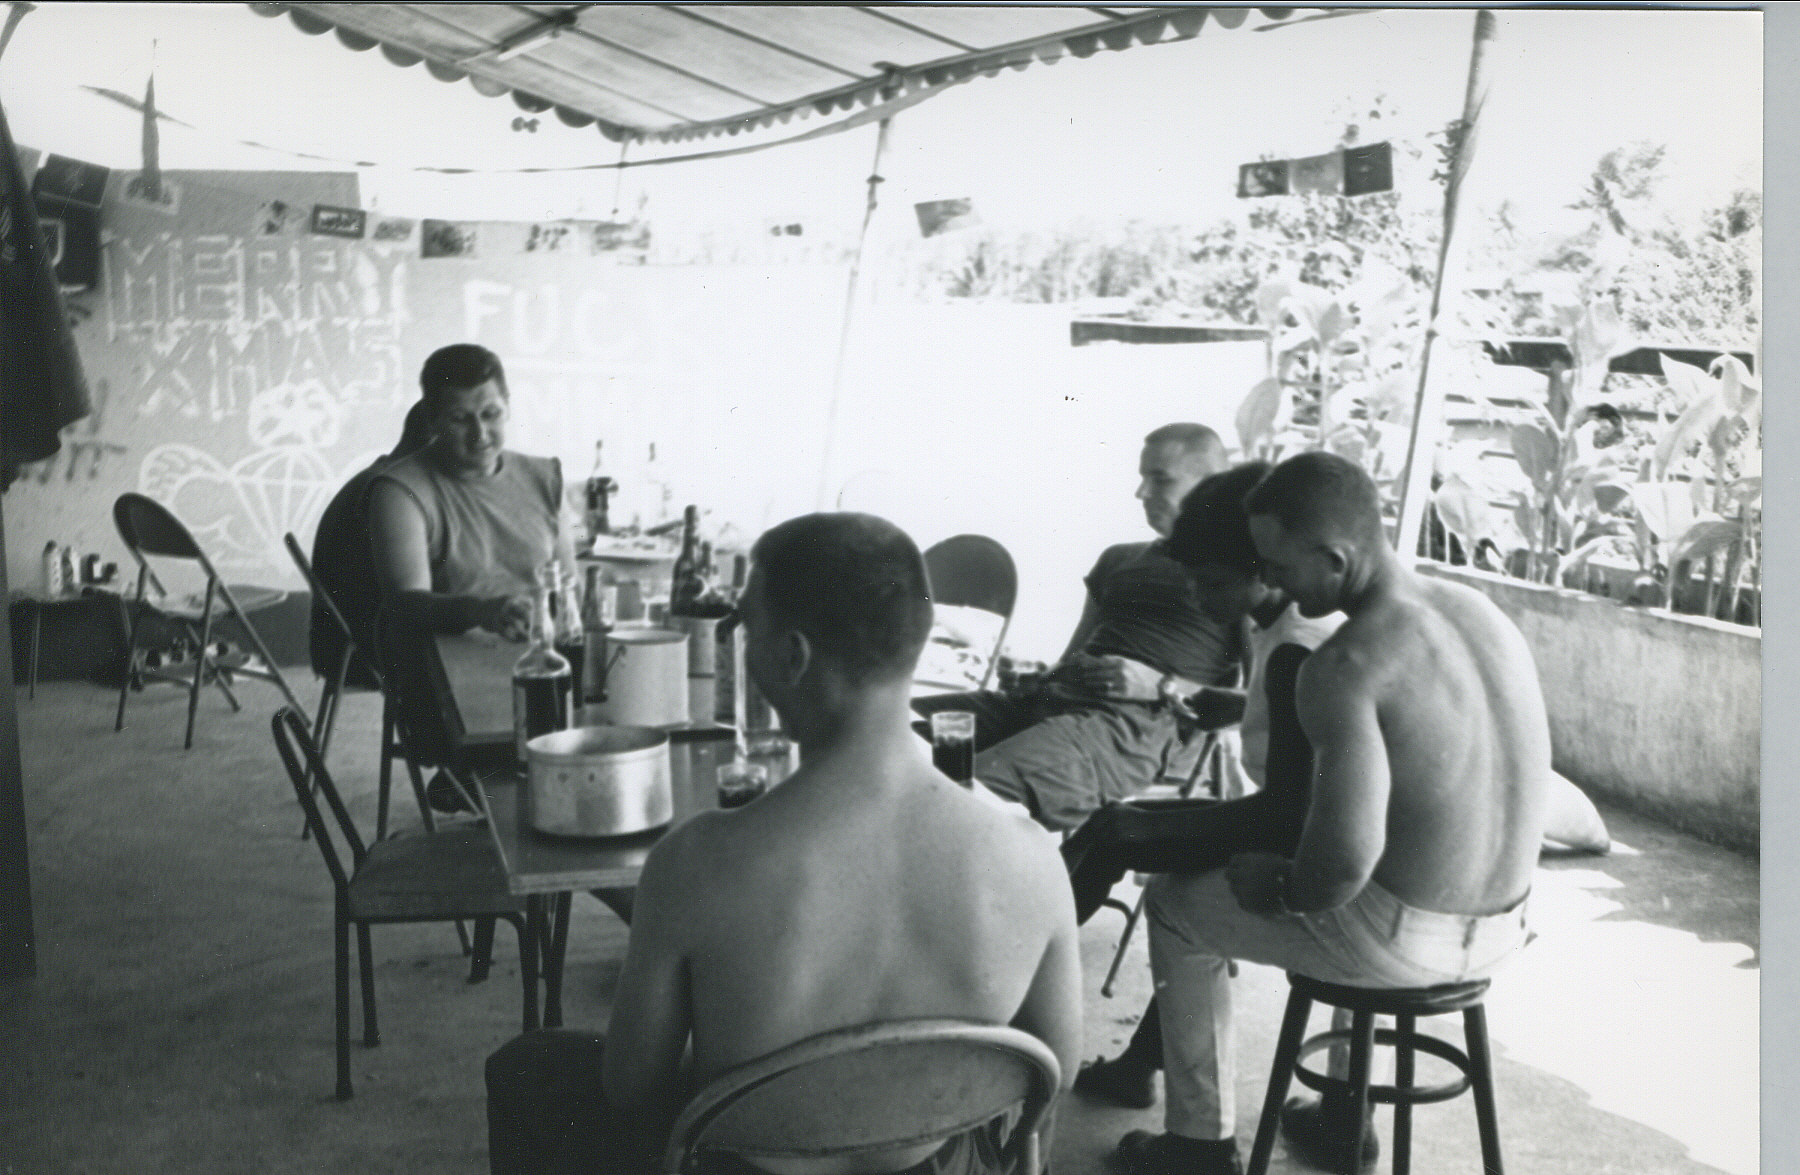 Dec 1966 - Hotel in Trang S Thailand - SFC Knuutilla, SGT Helms, SGT Lonny Homes, SFC J P Silk - Notice Our Graffiti A 432